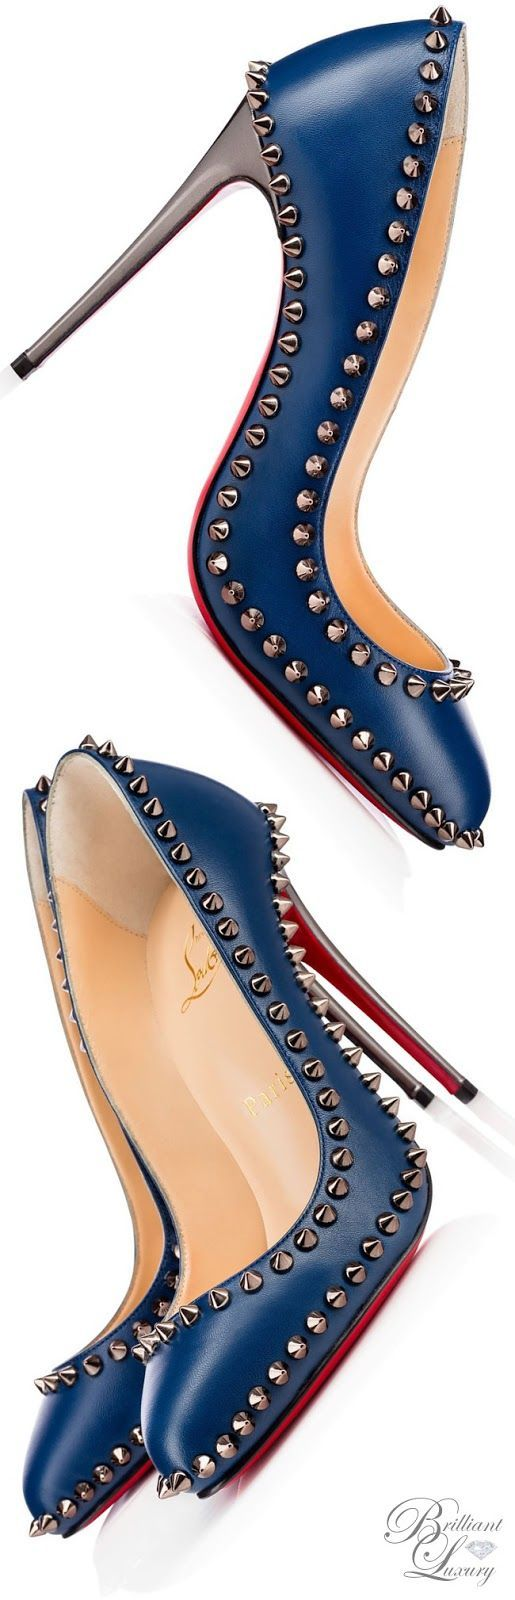 Christian Louboutin Dorispiky Kid/Specchio €825.00 - I just got that I would need exactly € 825 ;)